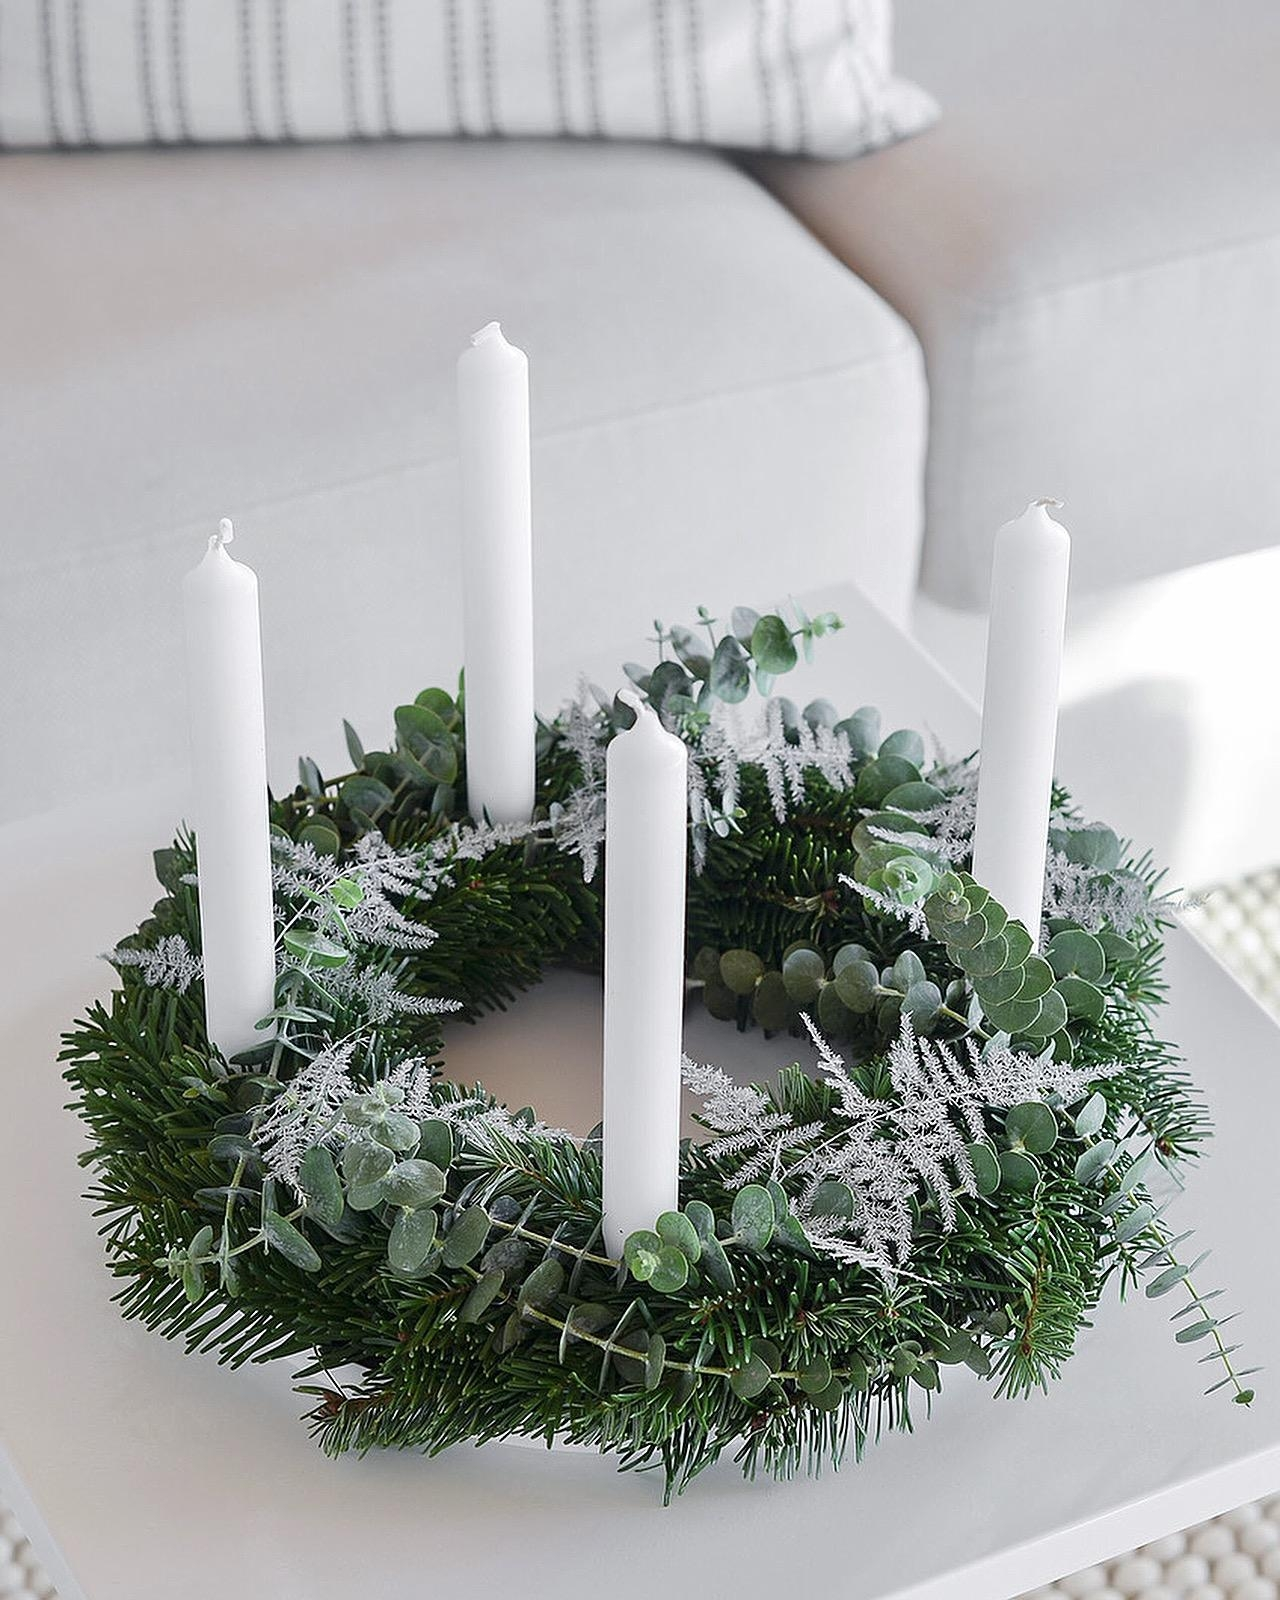 Mein diesjähriger Adventskranz mit Eukalyptus. 🌲